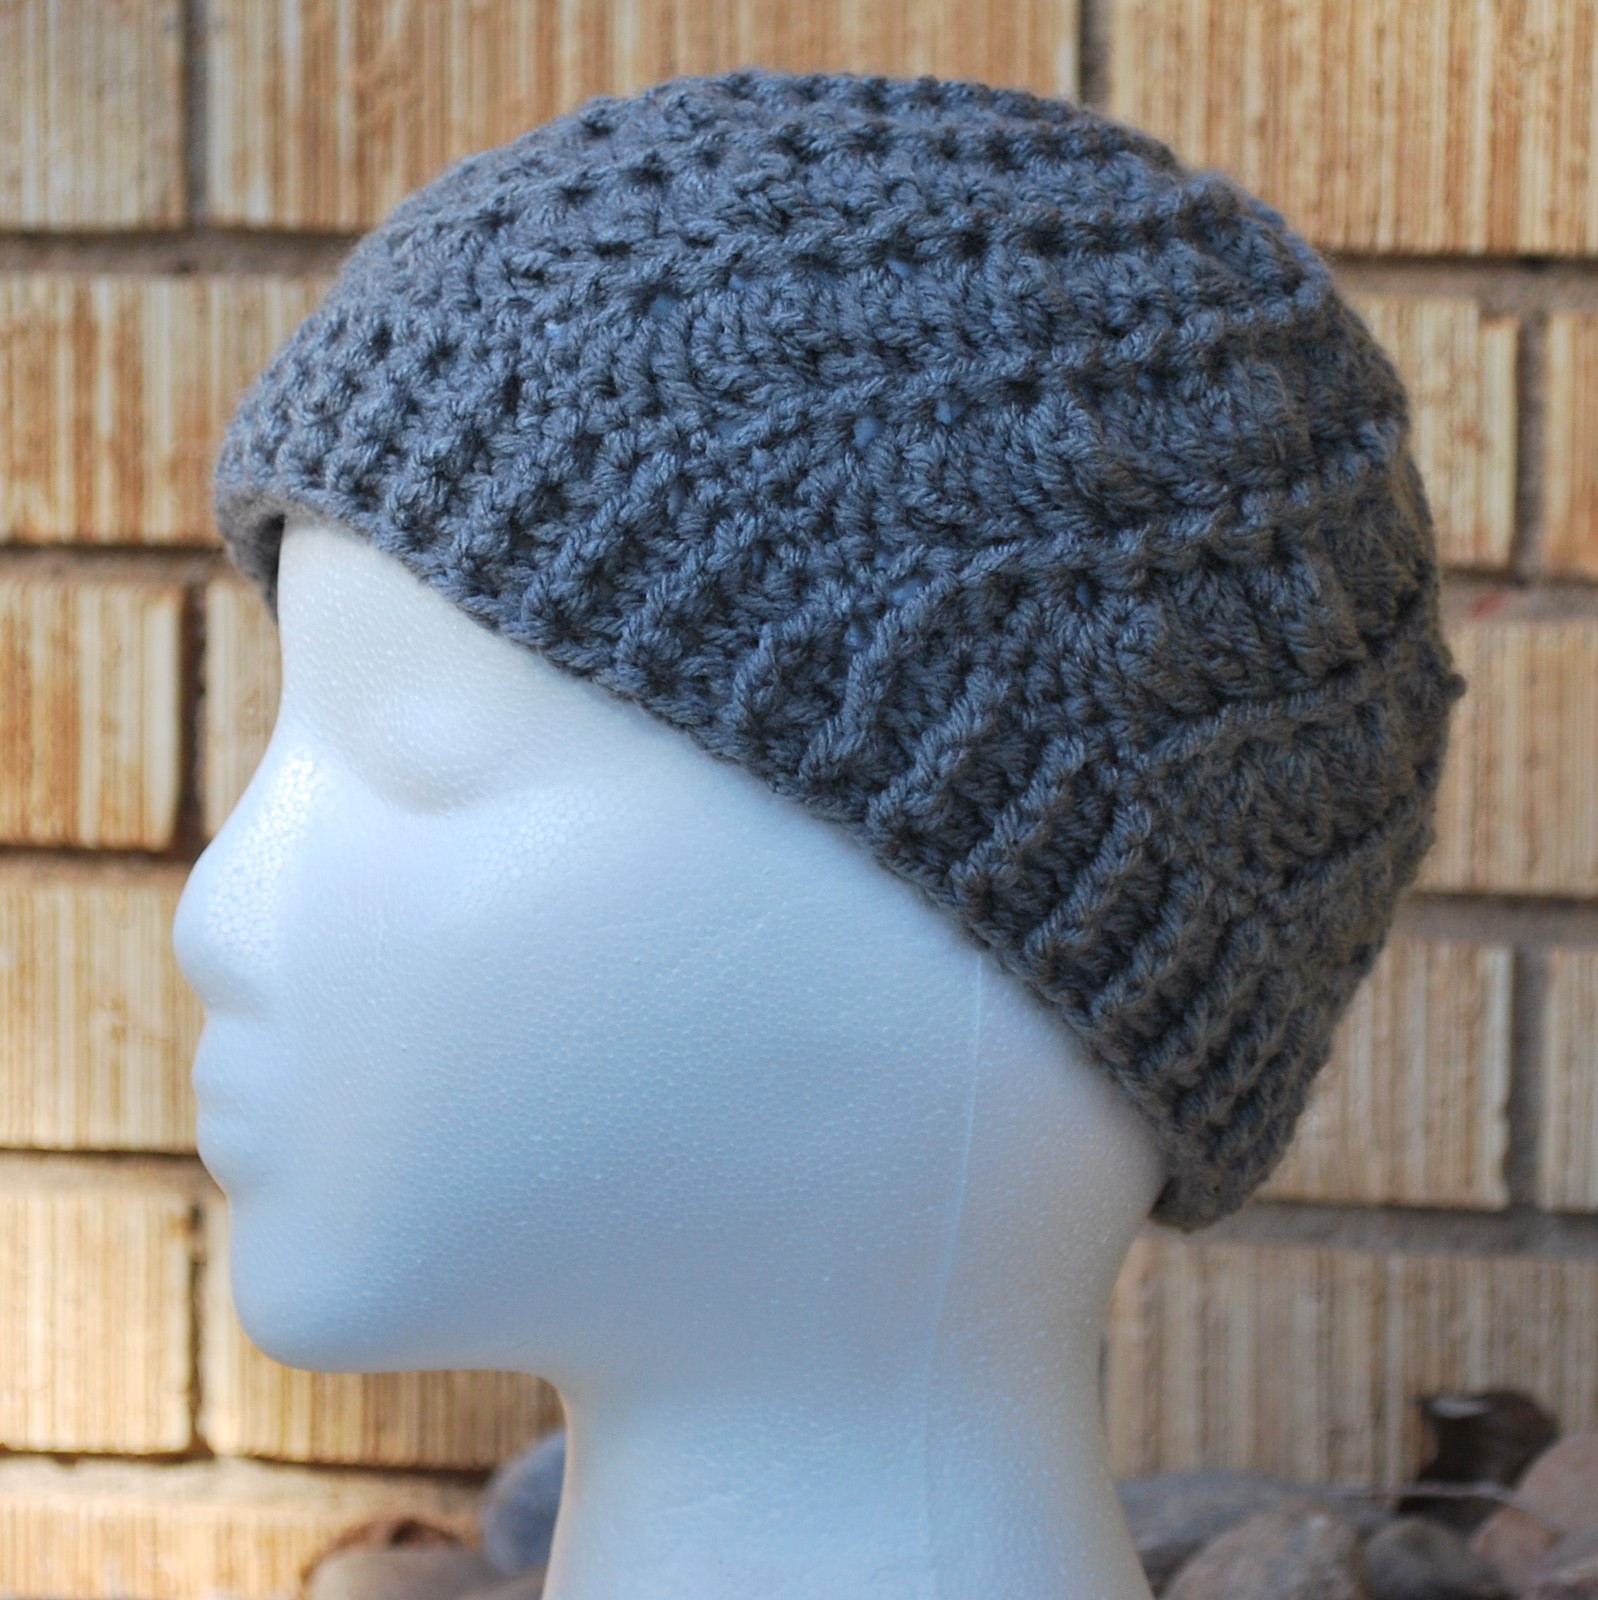 FREE ADULT BEANIE CROCHET PATTERN Crochet and Knitting